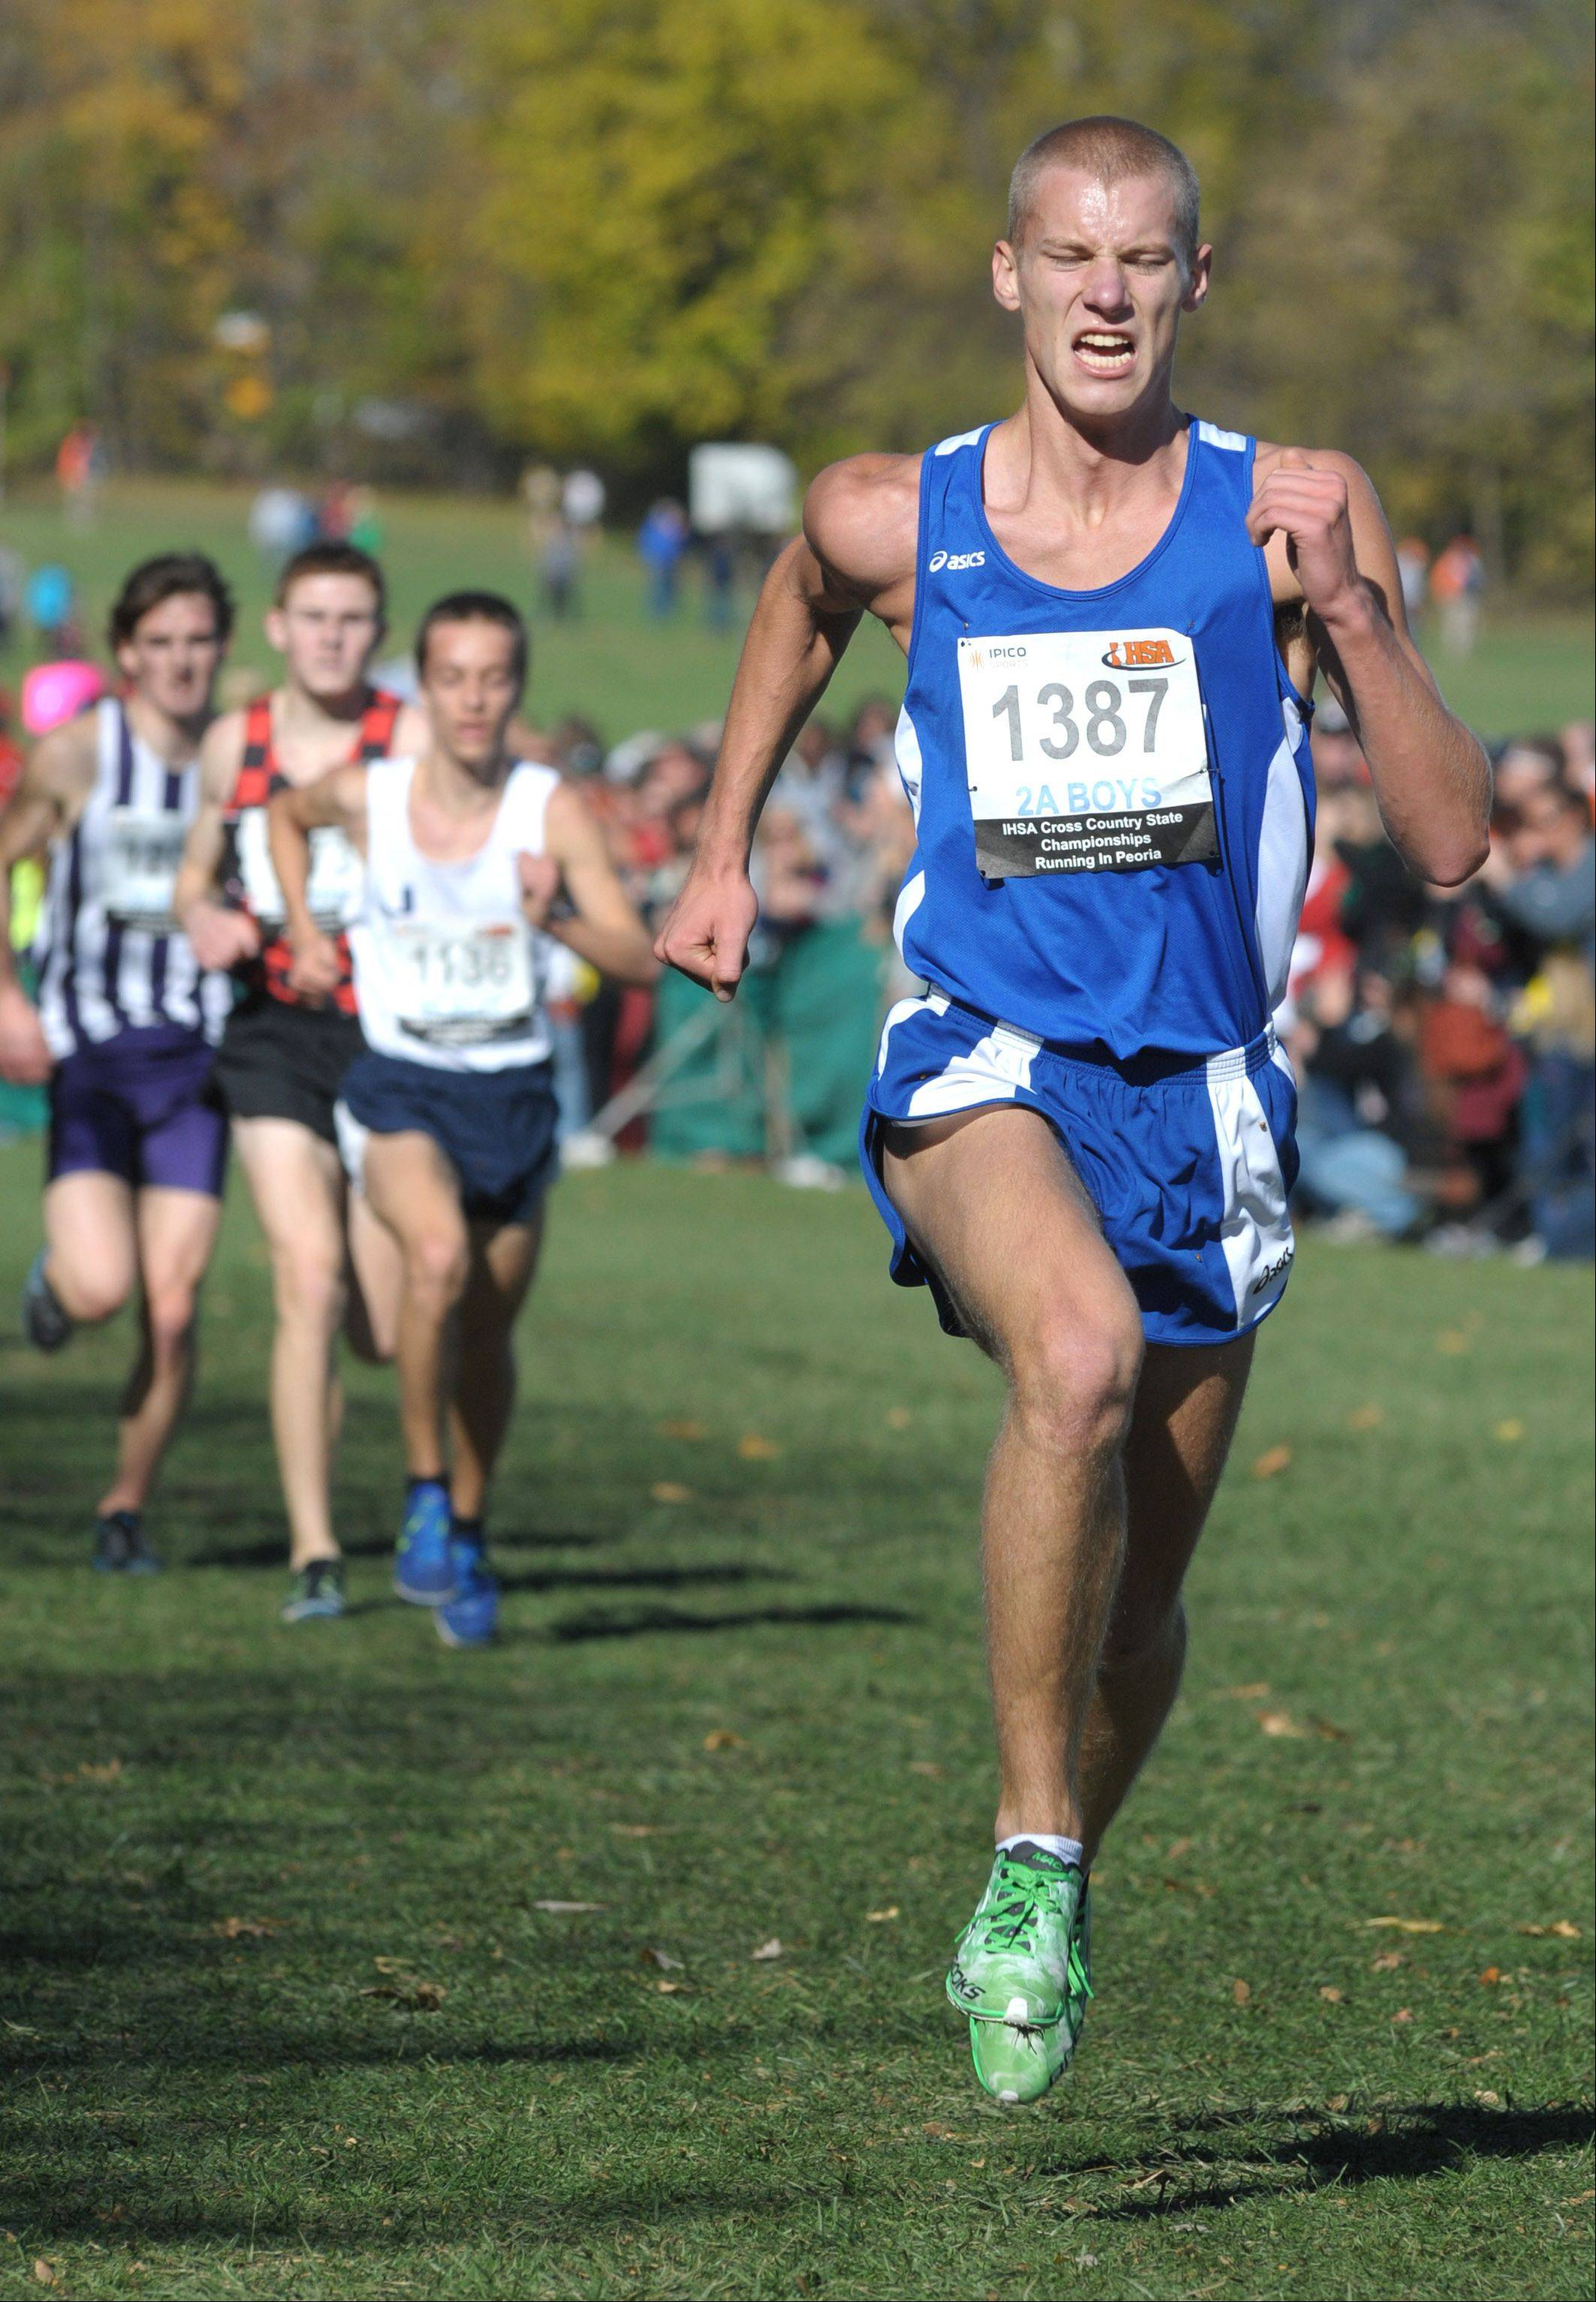 Laura Stoecker/lstoecker@dailyherald.comVernon Hills' Kyle Whitney takes 8th place in the Class 2A IHSA cross country state final at Detweiller Park in Peoria on Saturday, November 9.